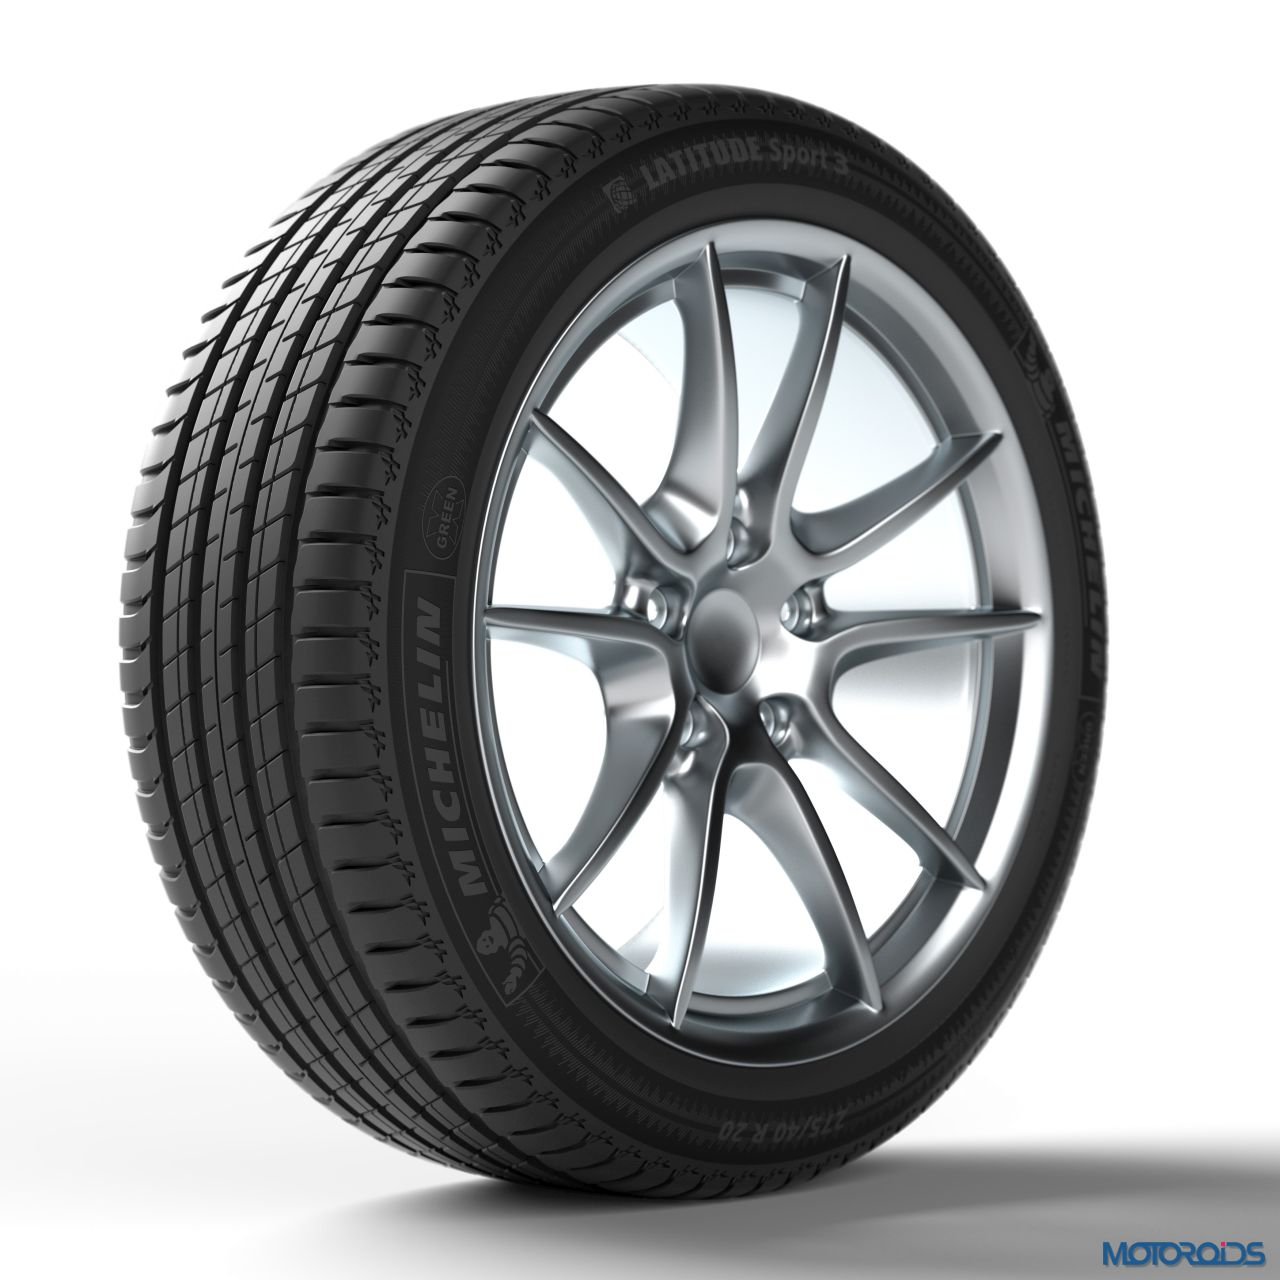 michelin latitude sport 3 premium suv tyre now available. Black Bedroom Furniture Sets. Home Design Ideas